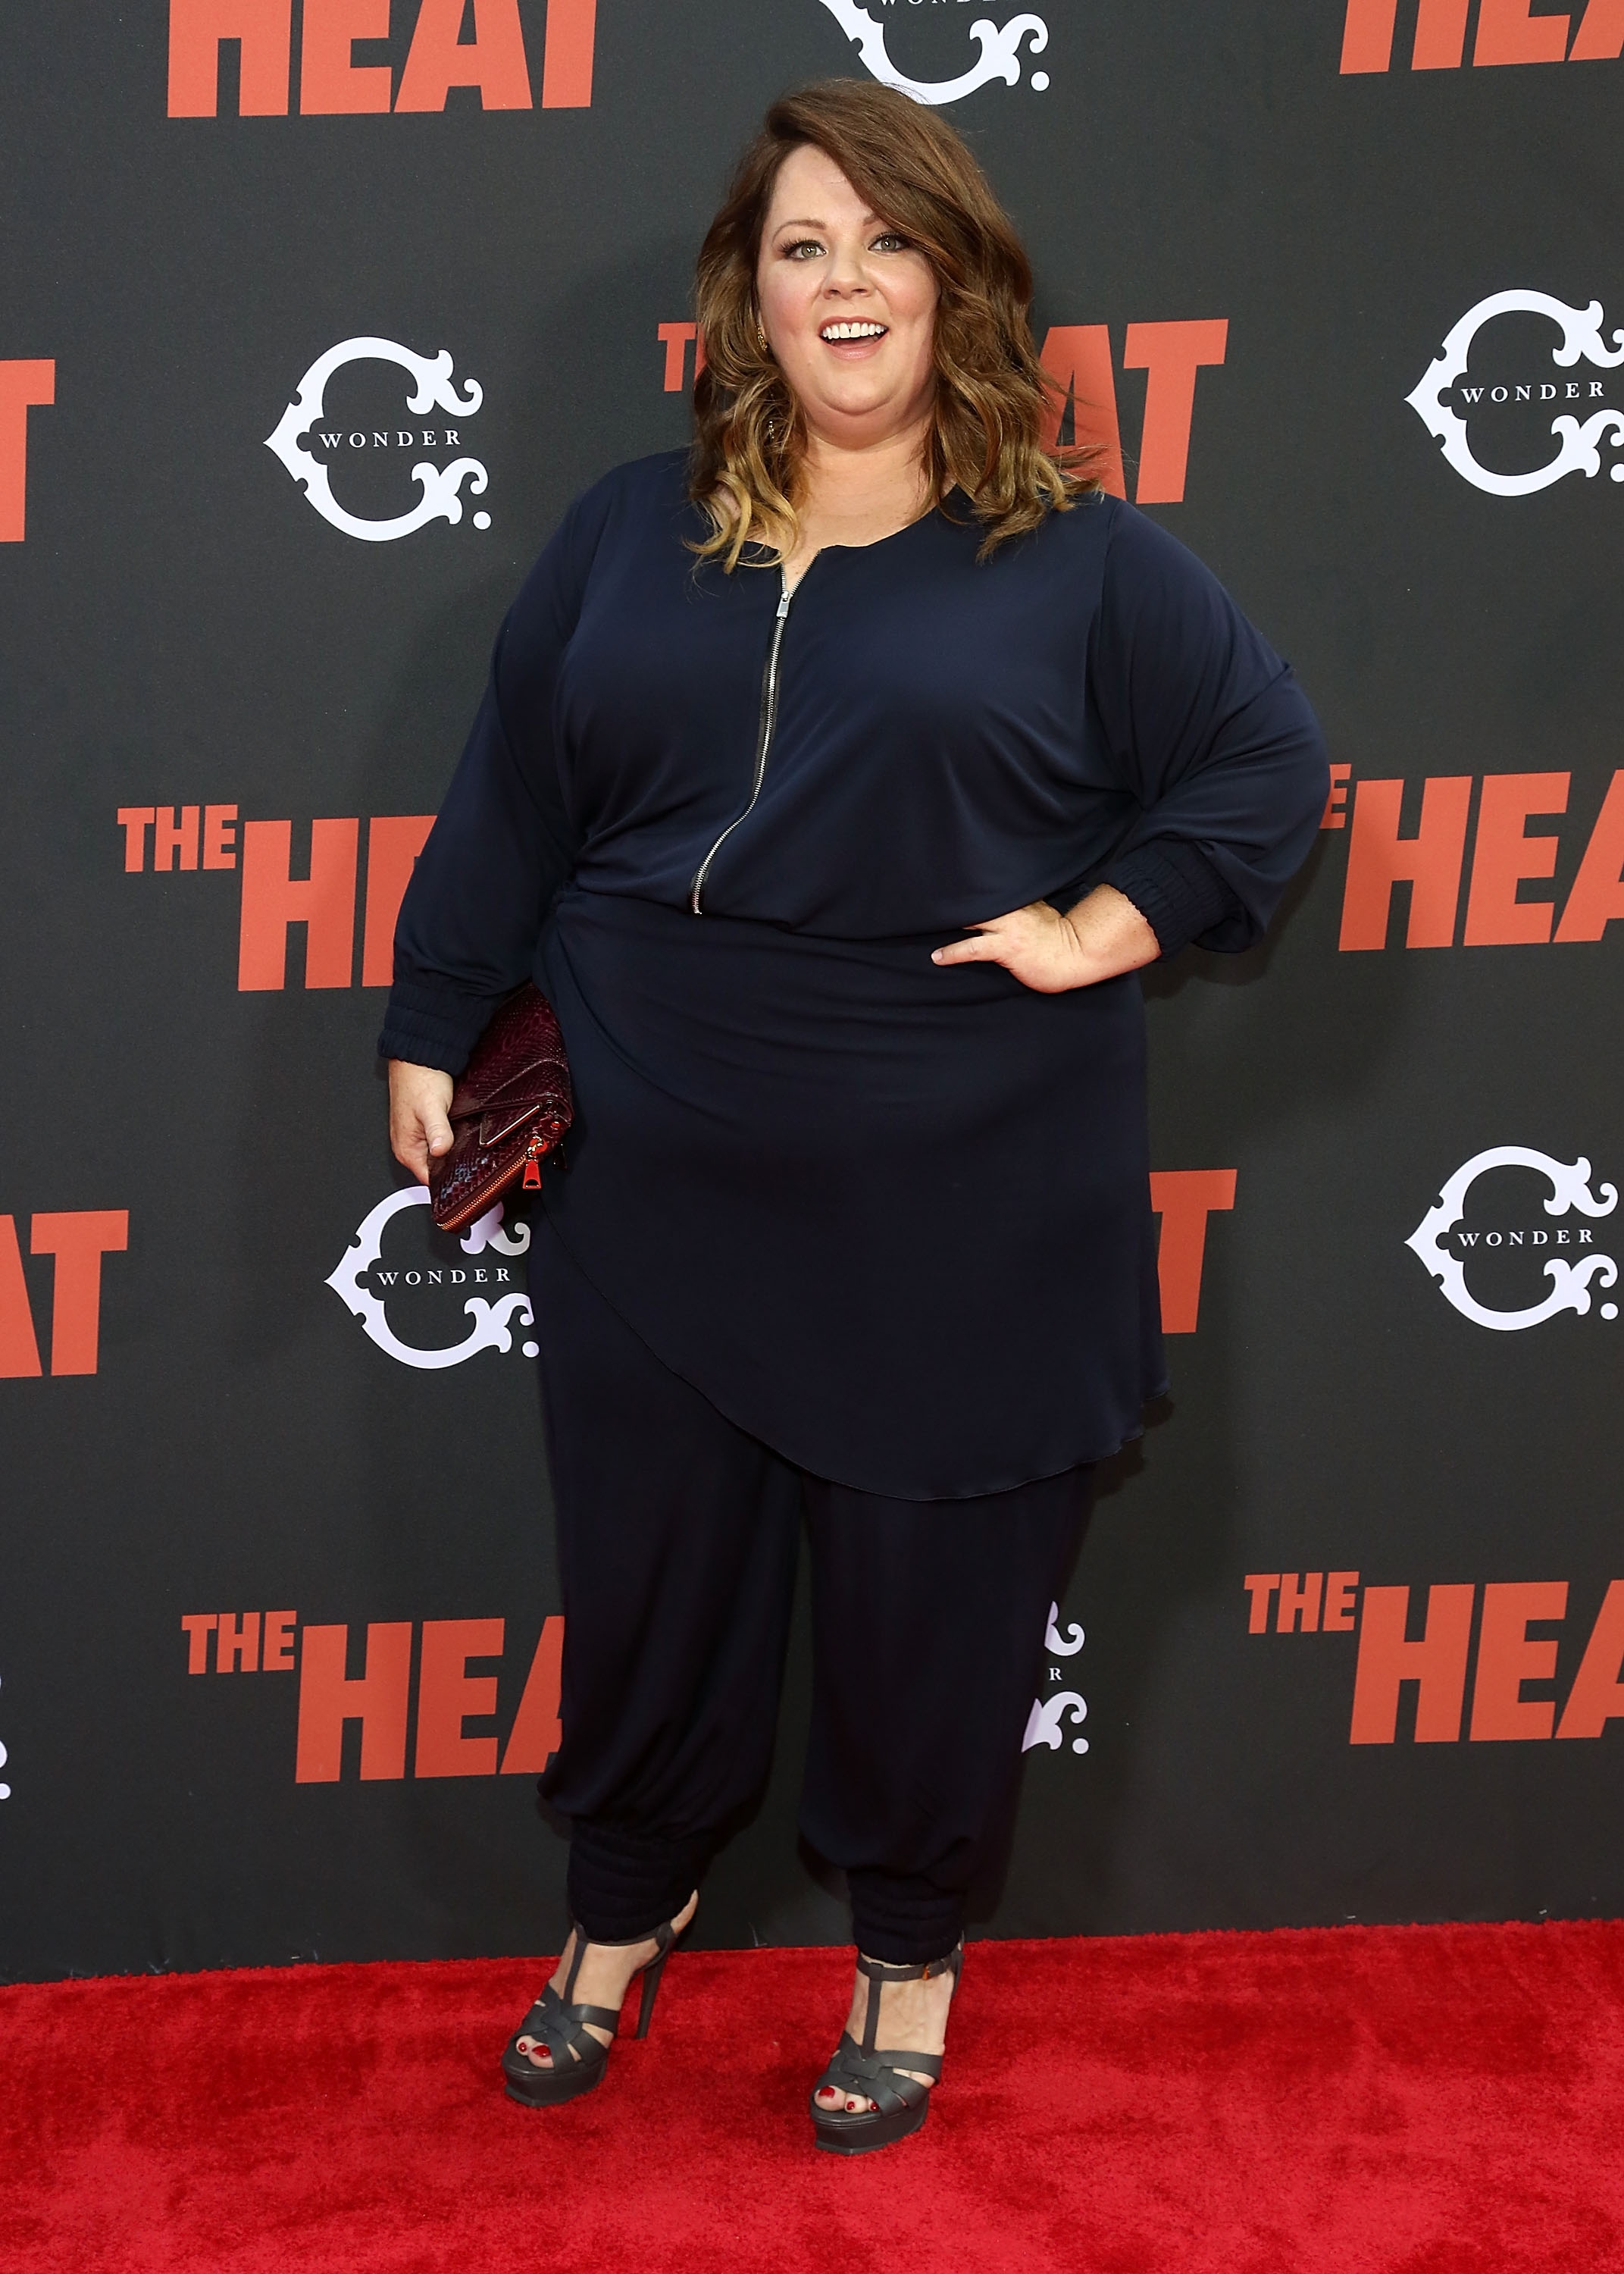 Melissa McCarthy at 'The Heat' New York Premiere (Photo: Astrid Stawiarz/Getty Images)